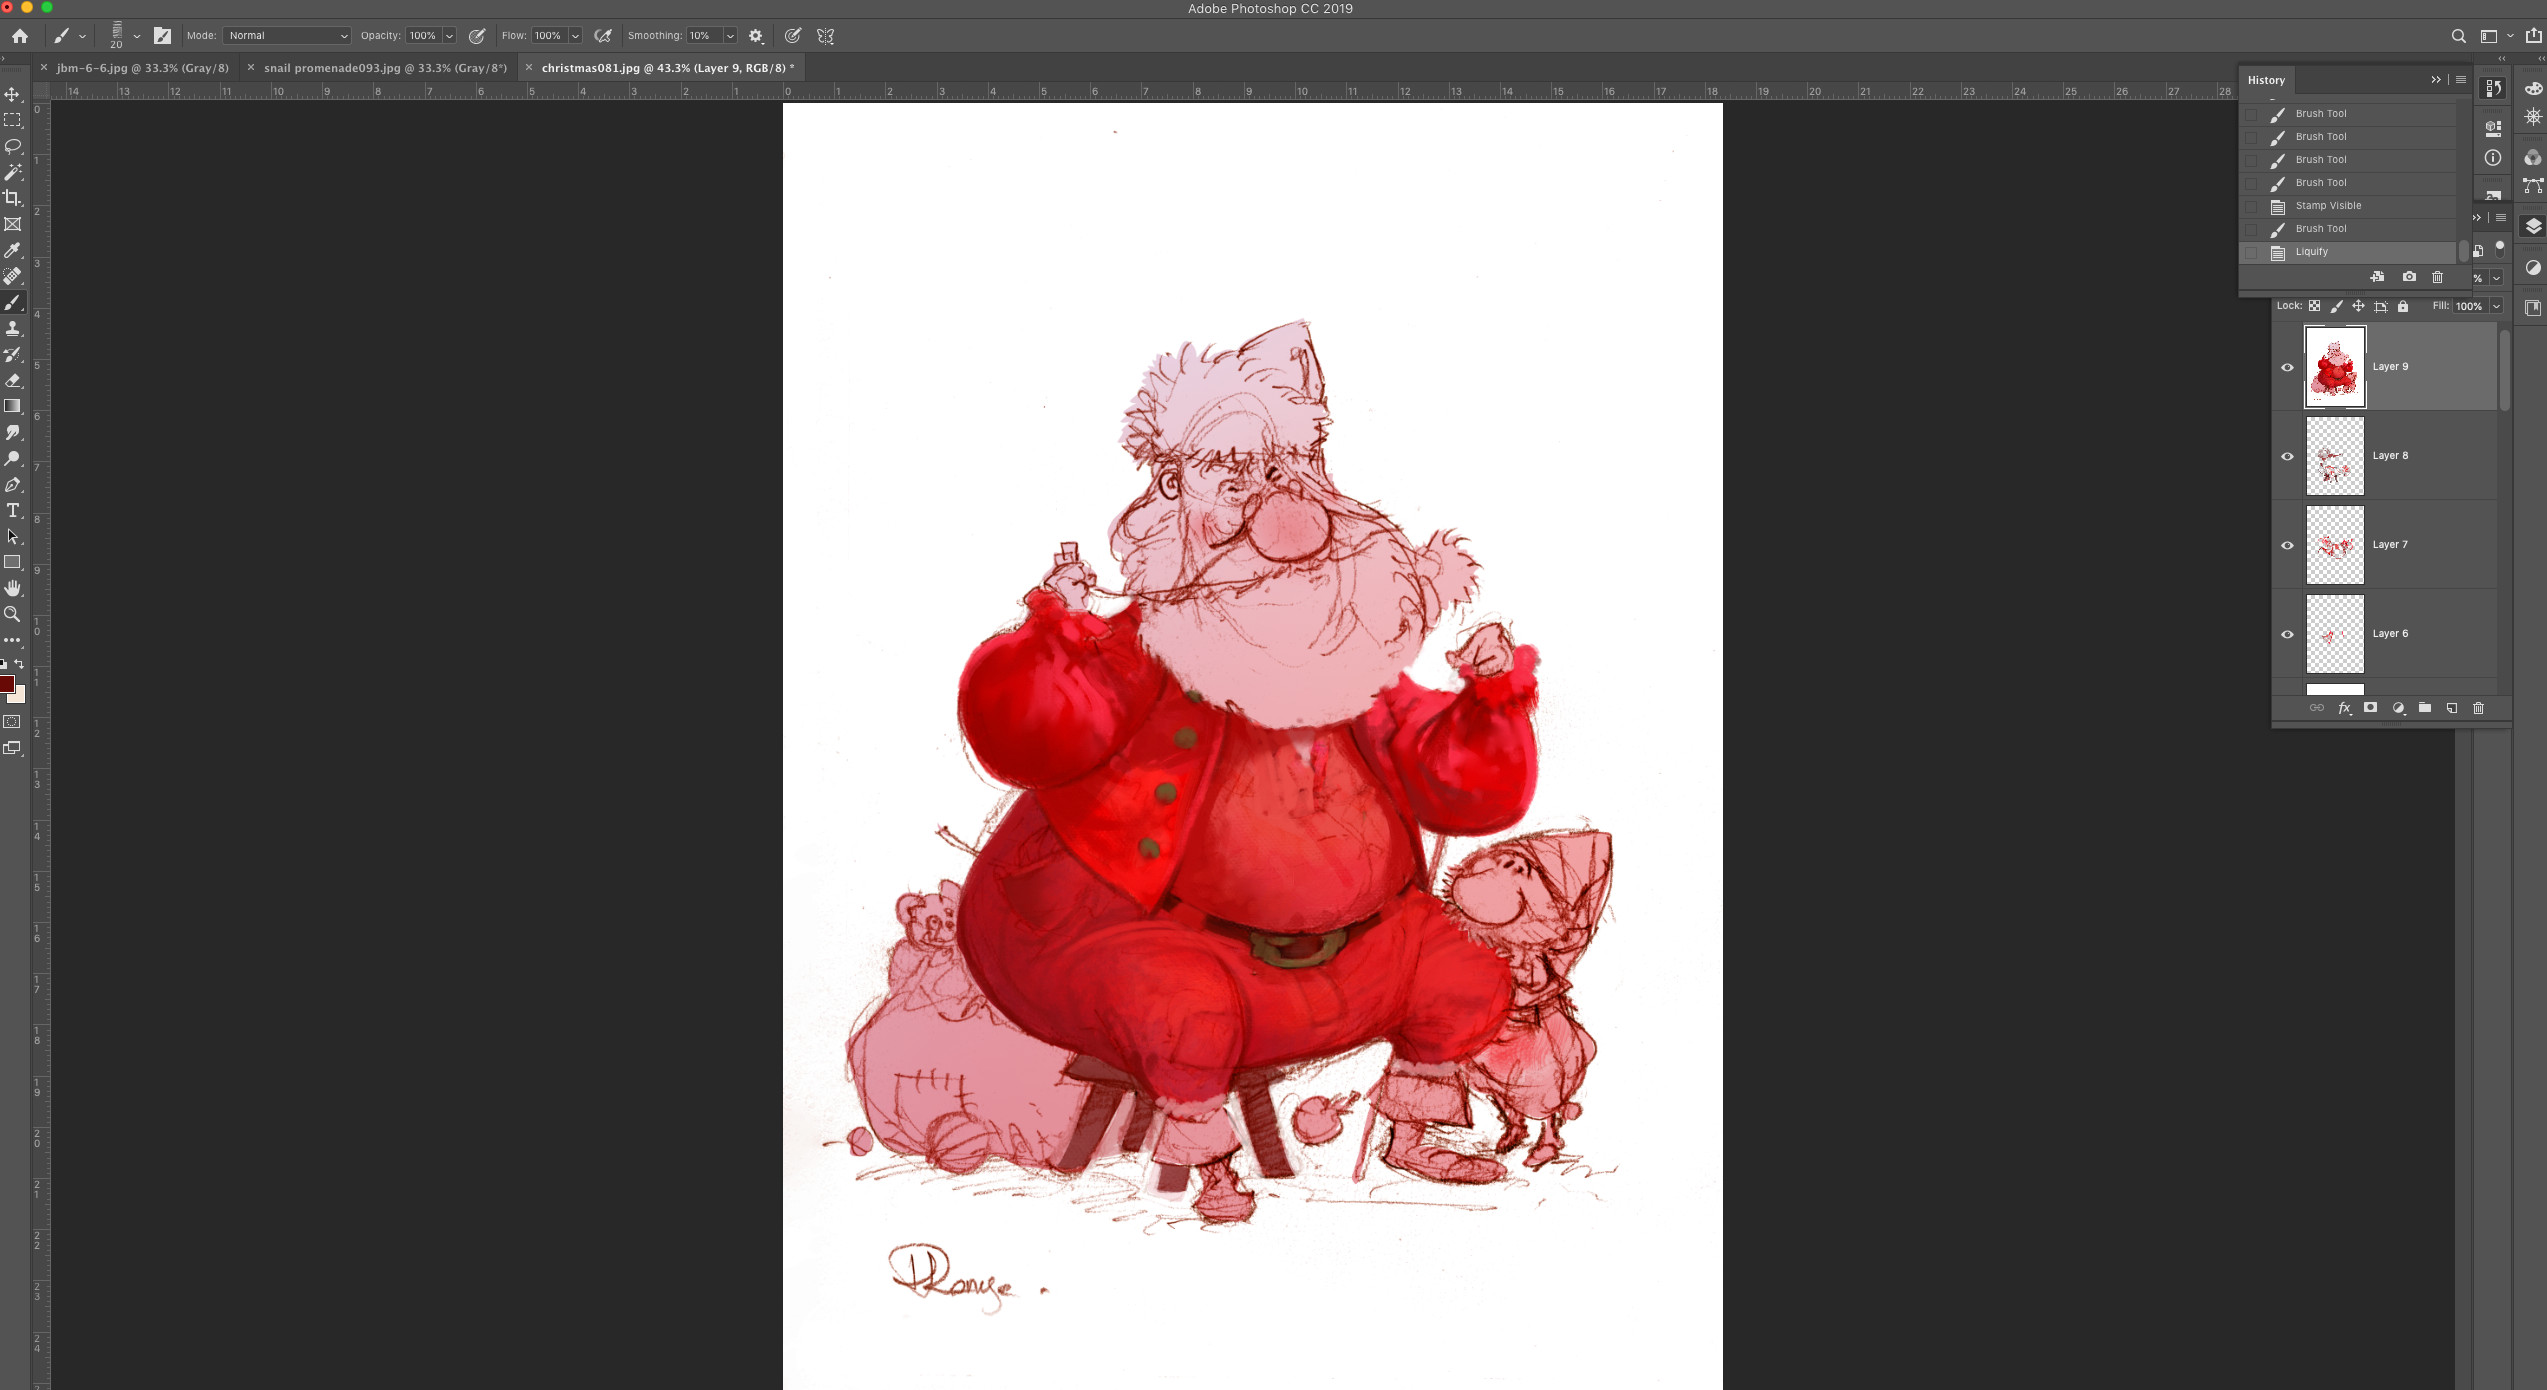 All in red is too much even for a Santa Klaus